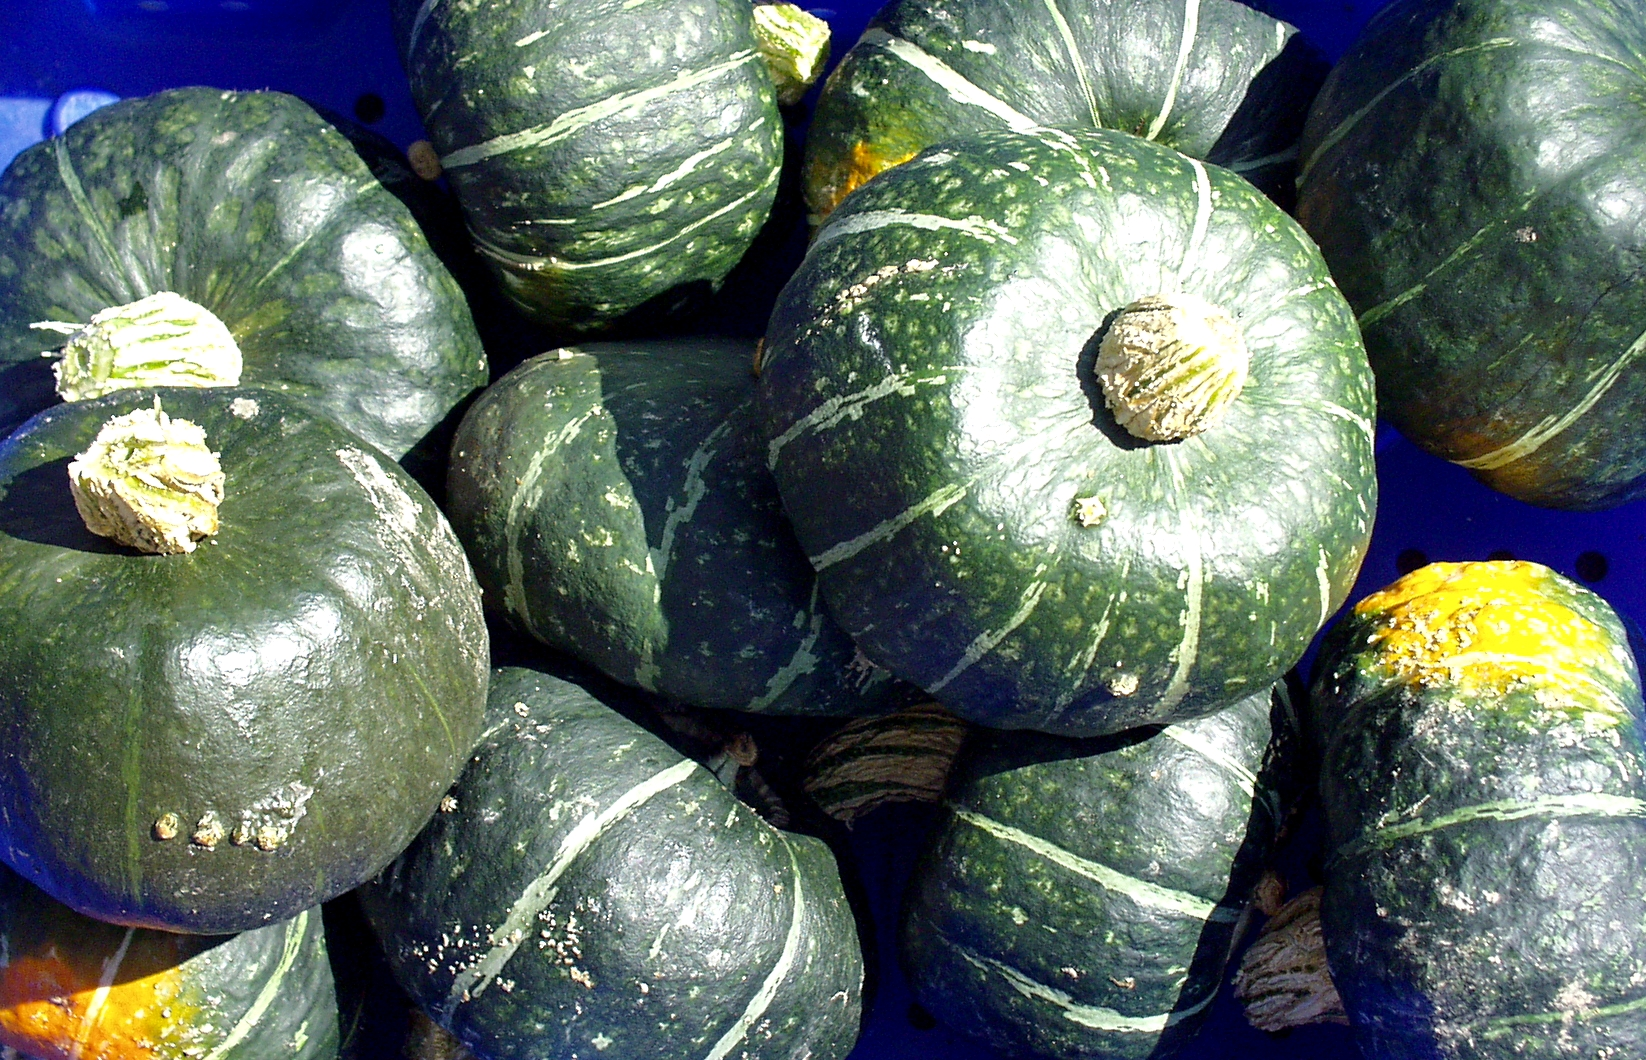 Winter squash from Summer Run. Photo copyright 2009 by Zachary D. Lyons.